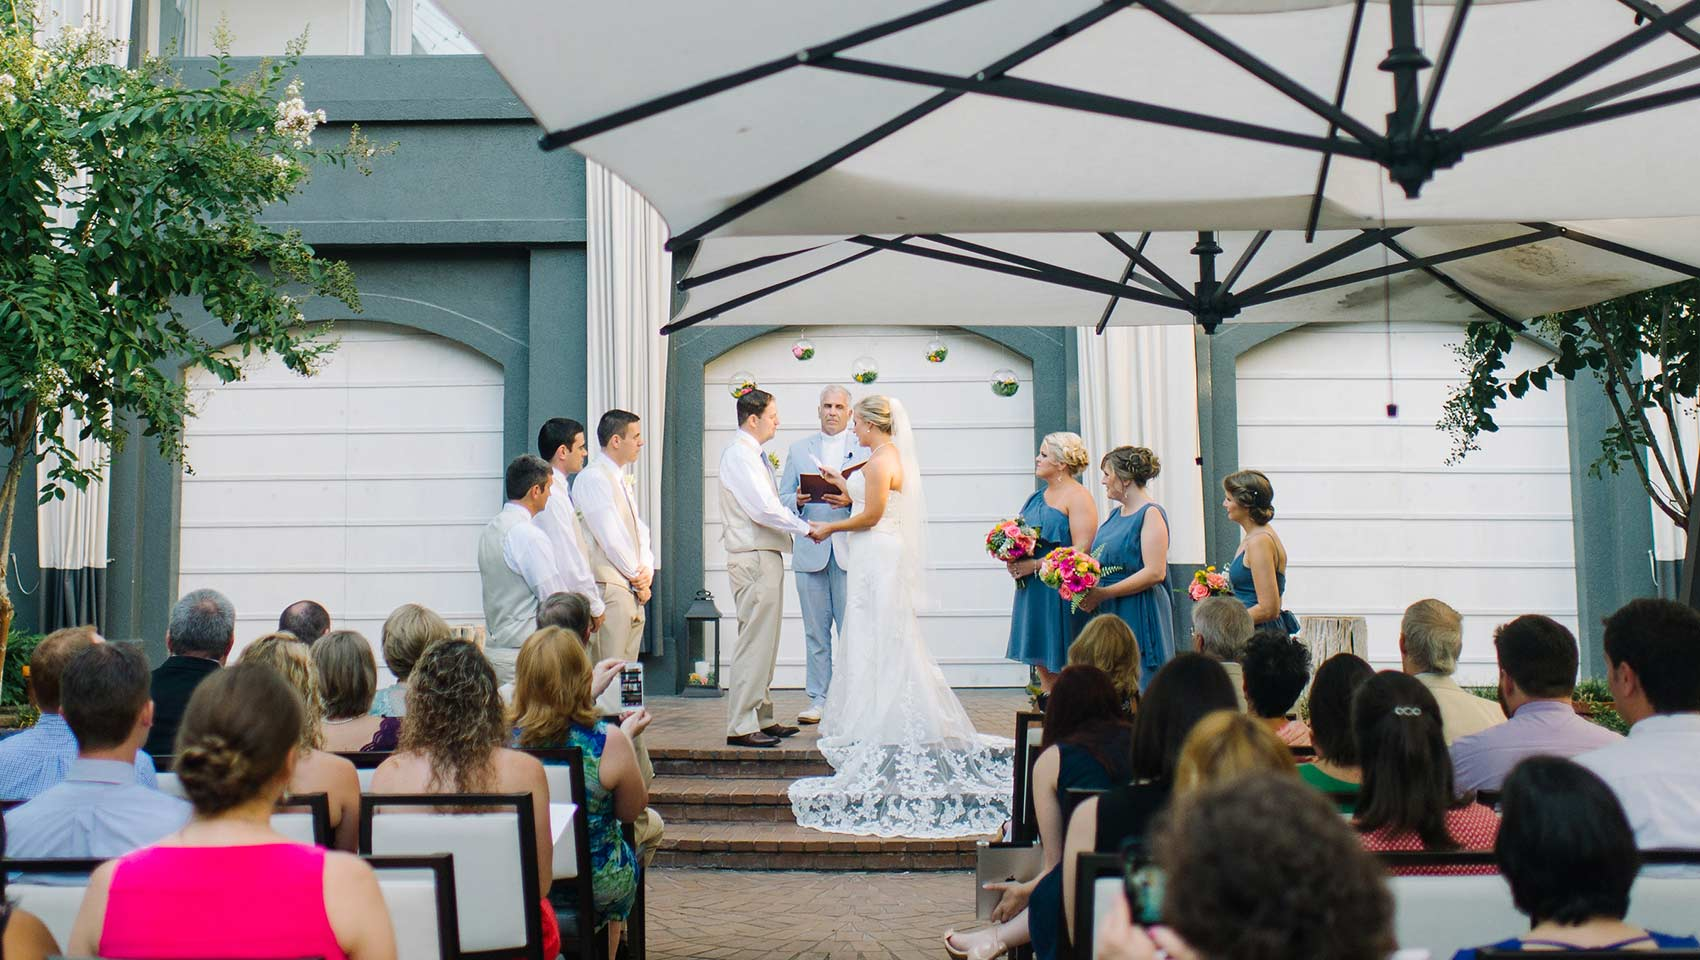 Kimpton Real Weddings: Plan Your Savannah Wedding